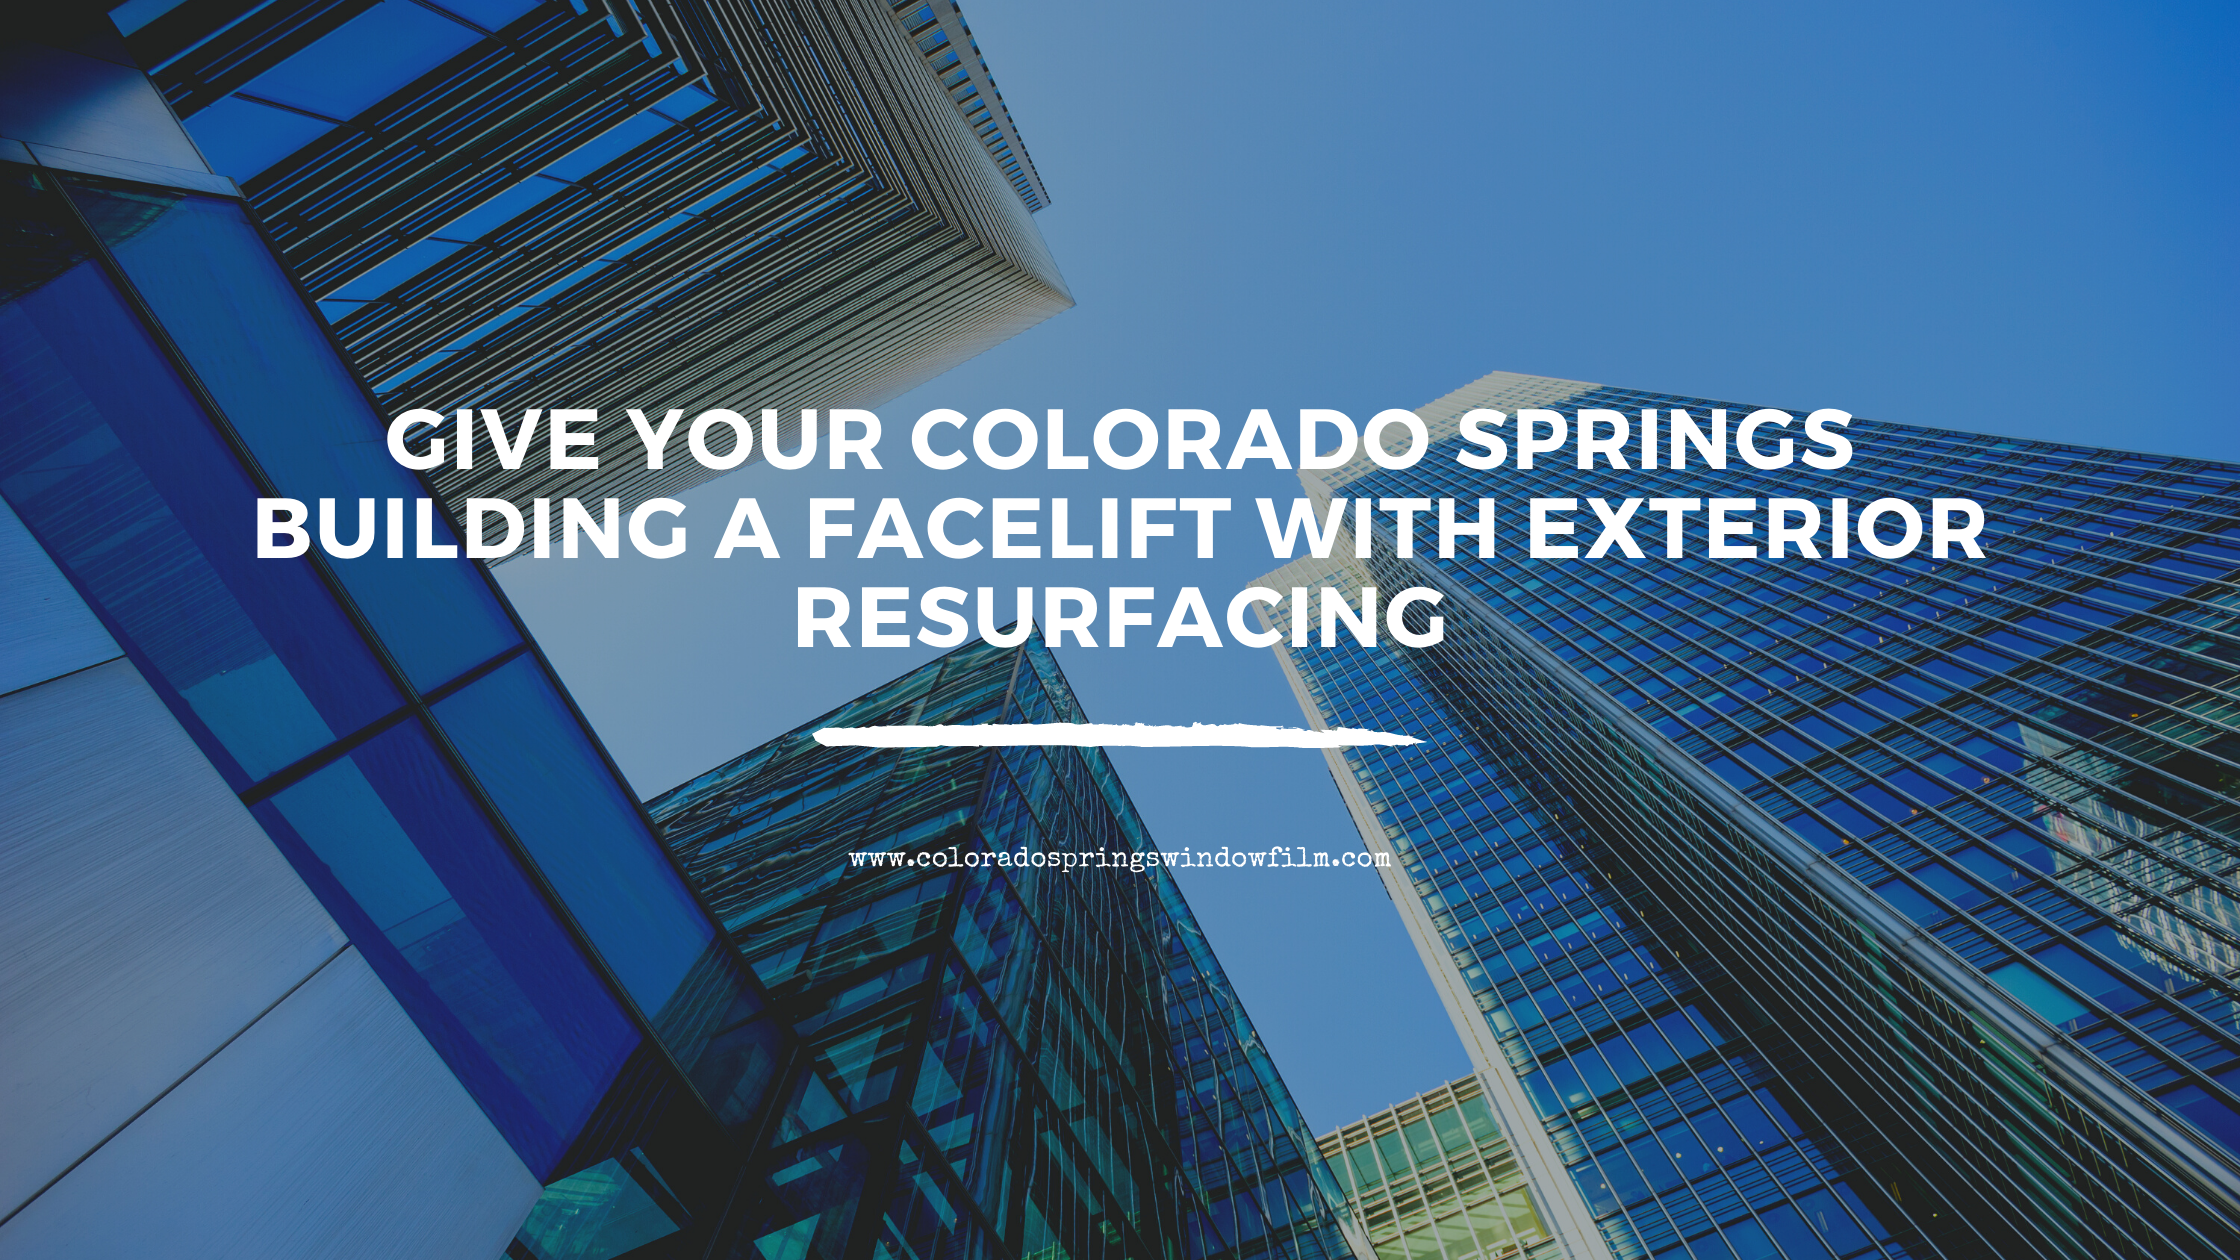 Give Your Colorado Springs Building a Facelift with Exterior Resurfacing